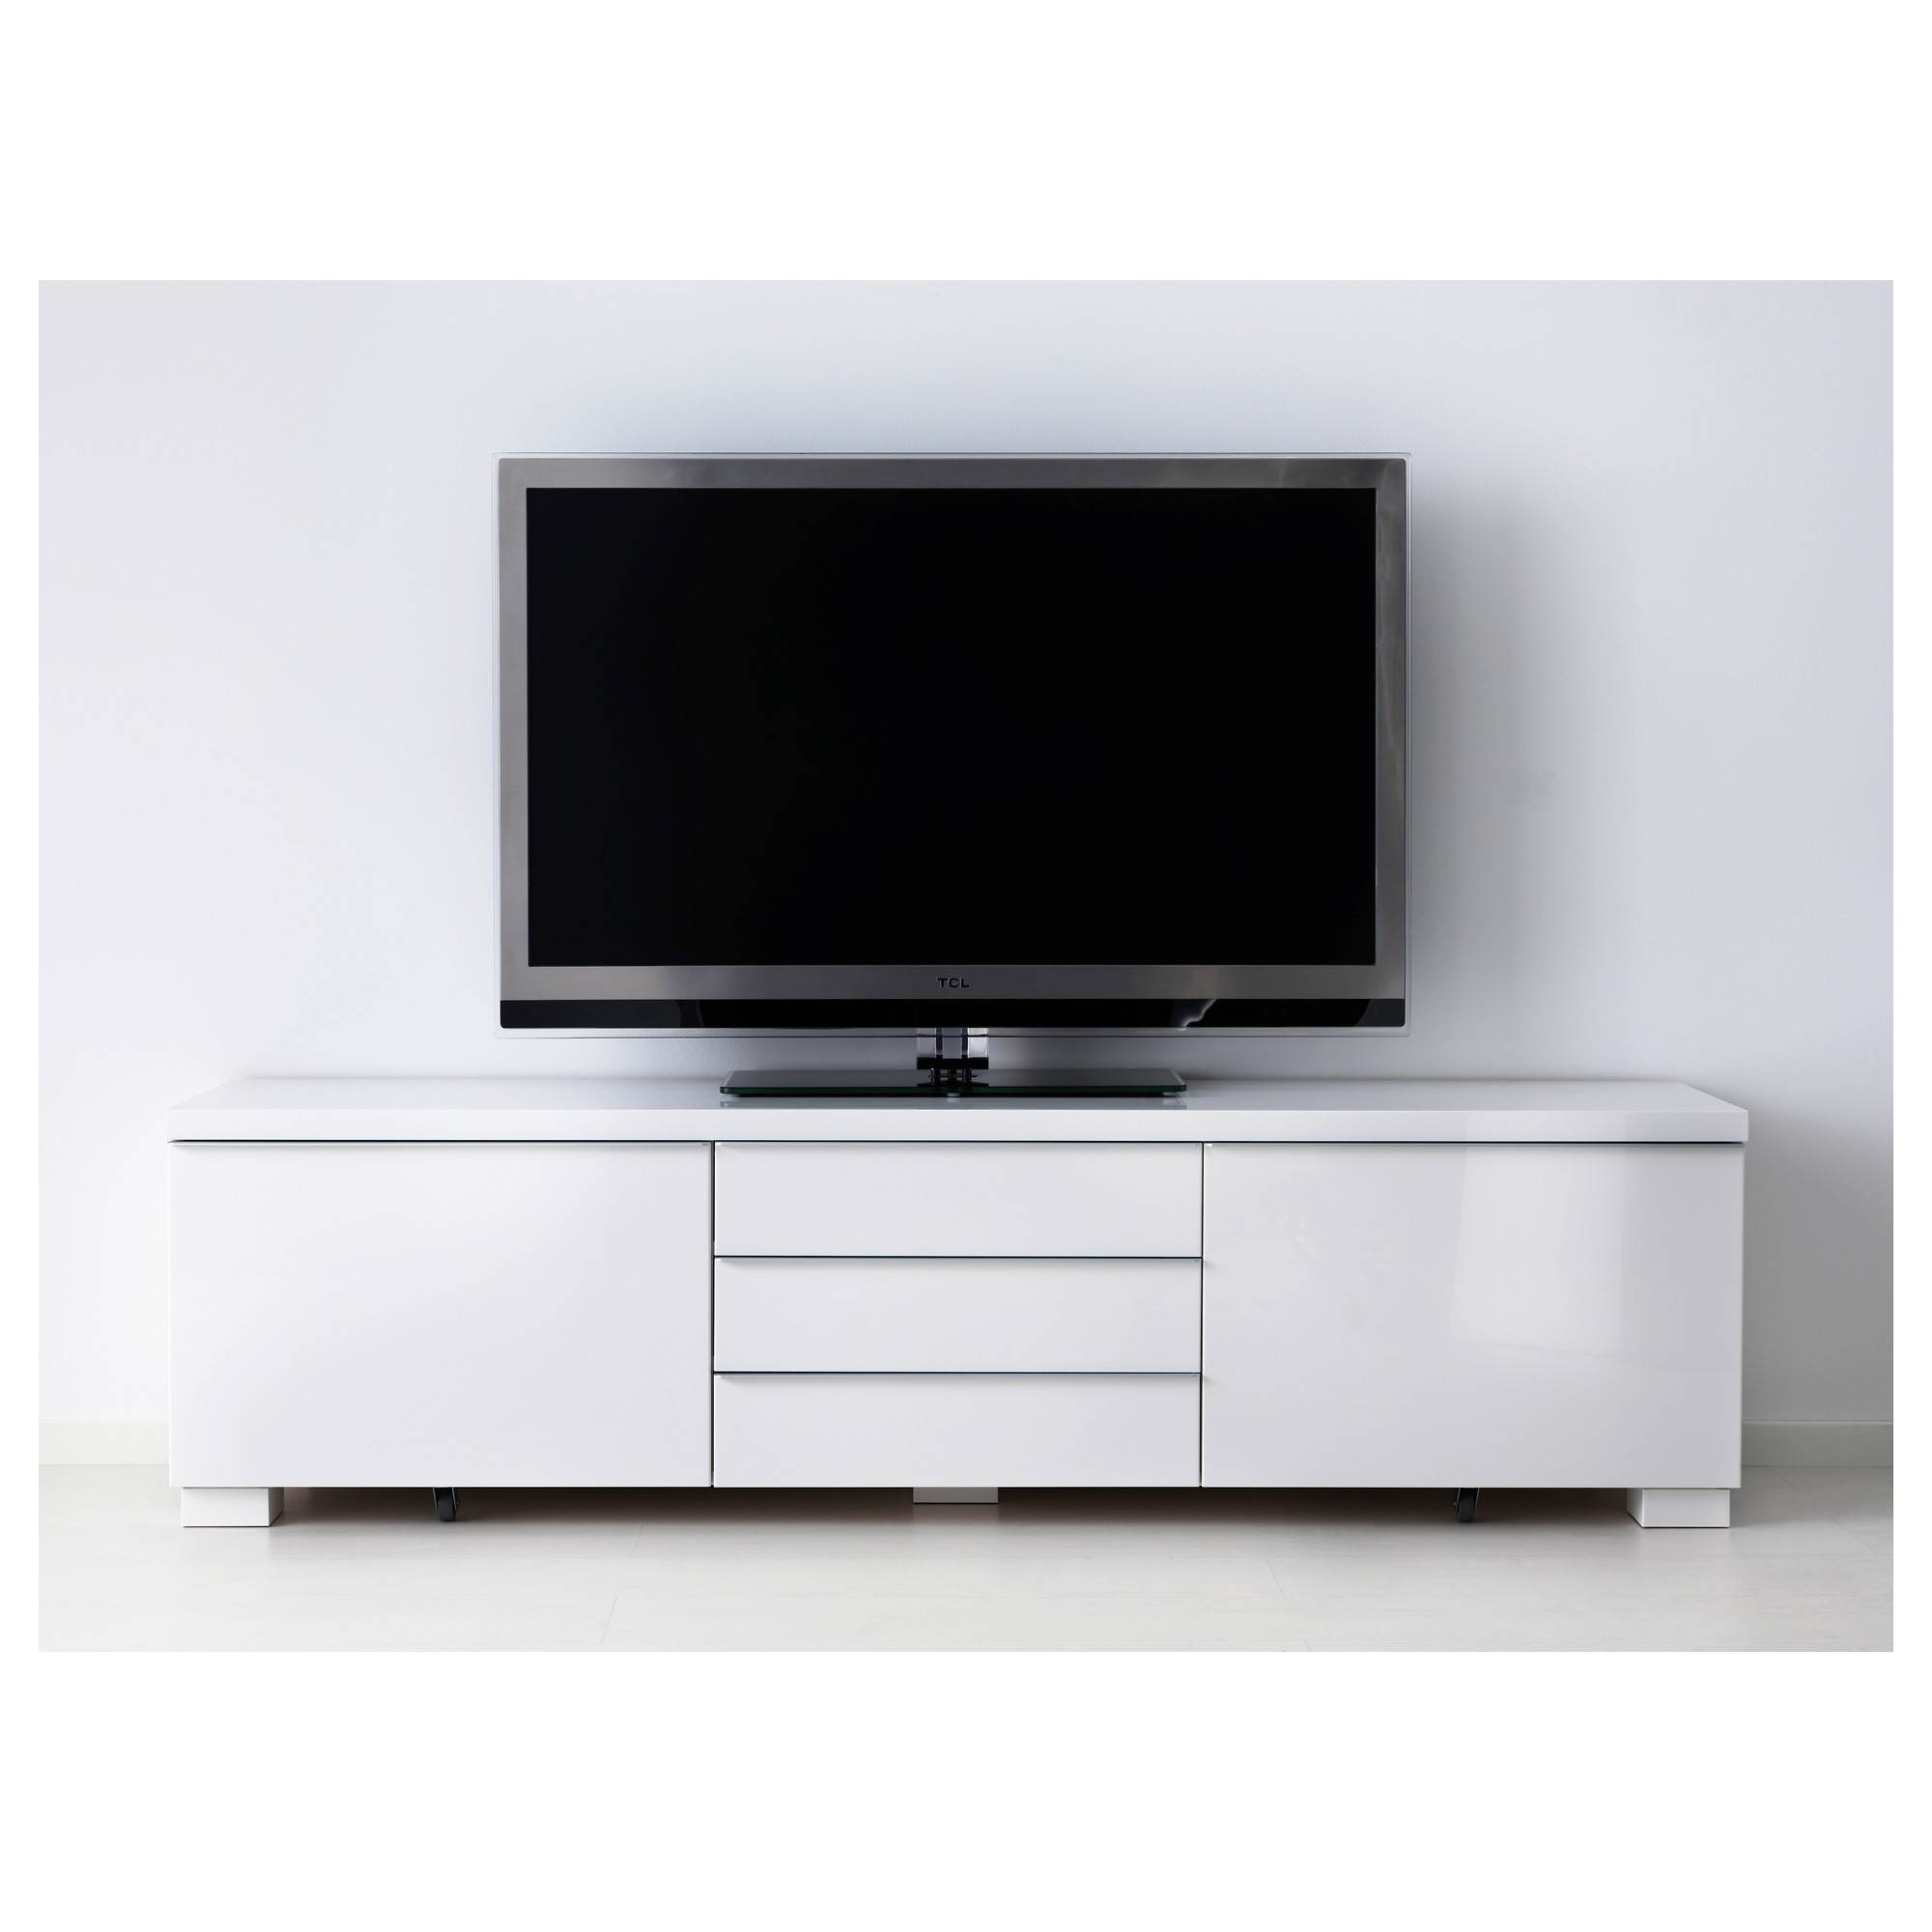 Bestå Burs Tv Unit – Ikea Intended For Large White Tv Stands (View 5 of 15)